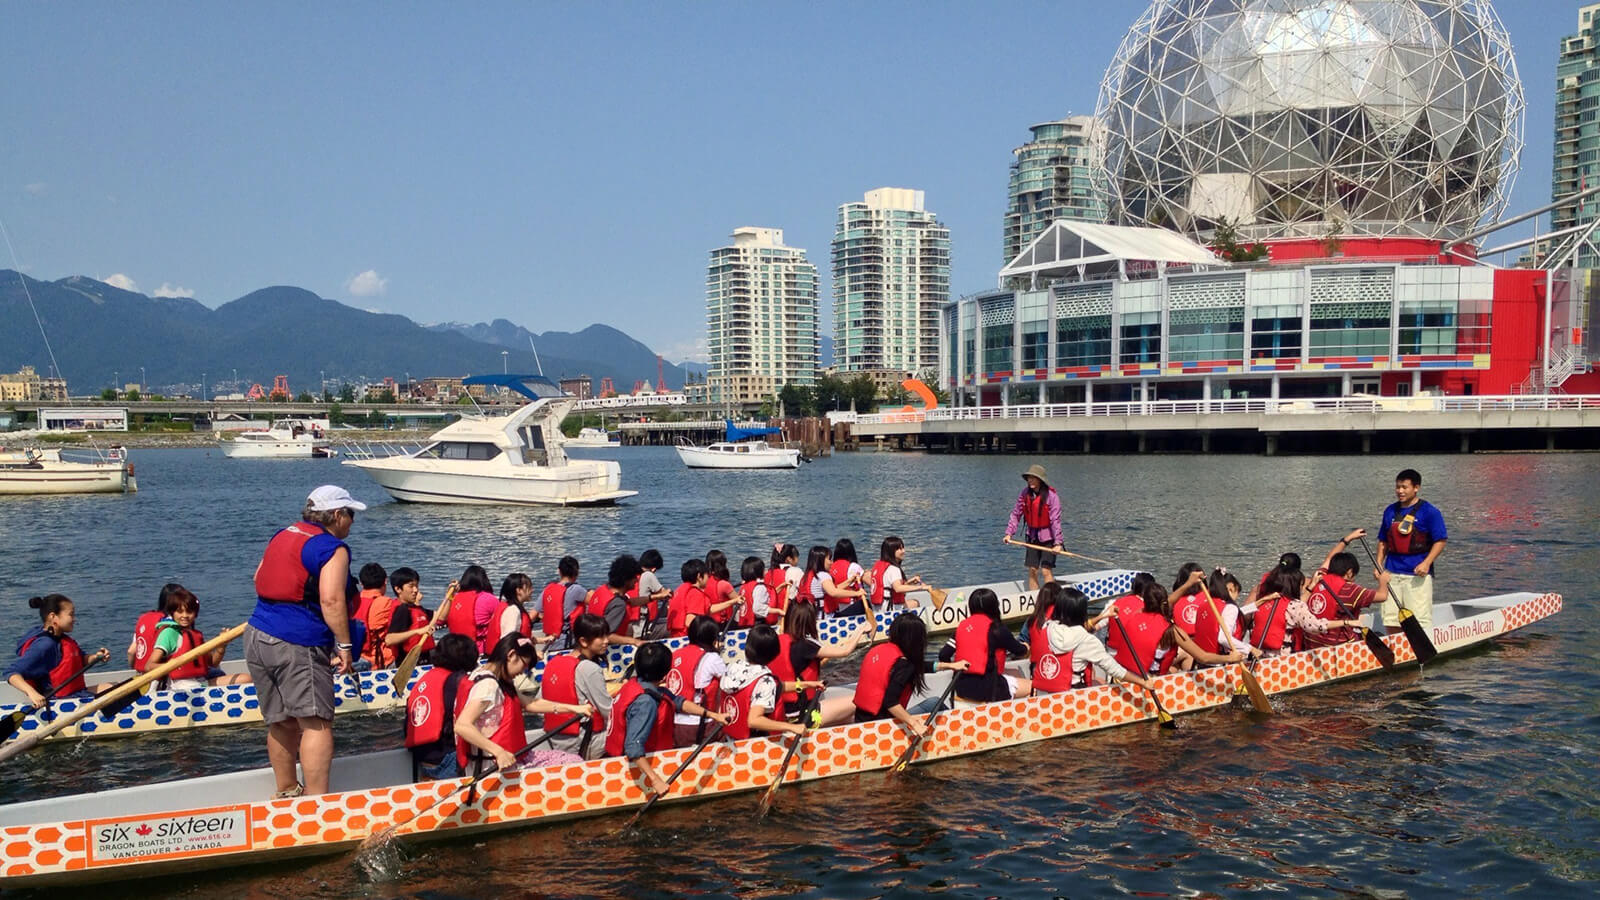 Vancouver Dragon Boat Festival is one of the top 5 summer festivals in Canada